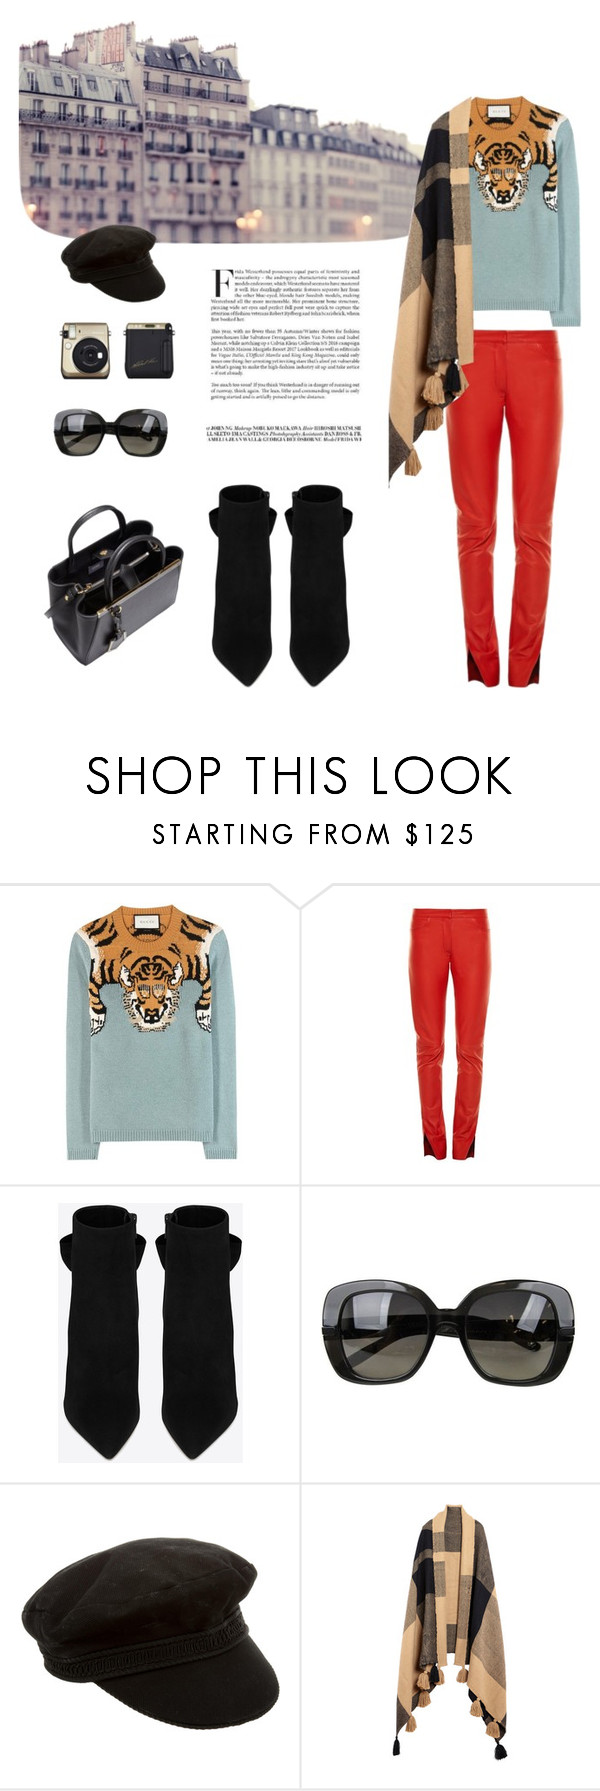 """: Lazy Day"" by chrismay-468 on Polyvore featuring Gucci, Loewe, Yves Saint Laurent, Bottega Veneta, Apiece Apart and Fendi"